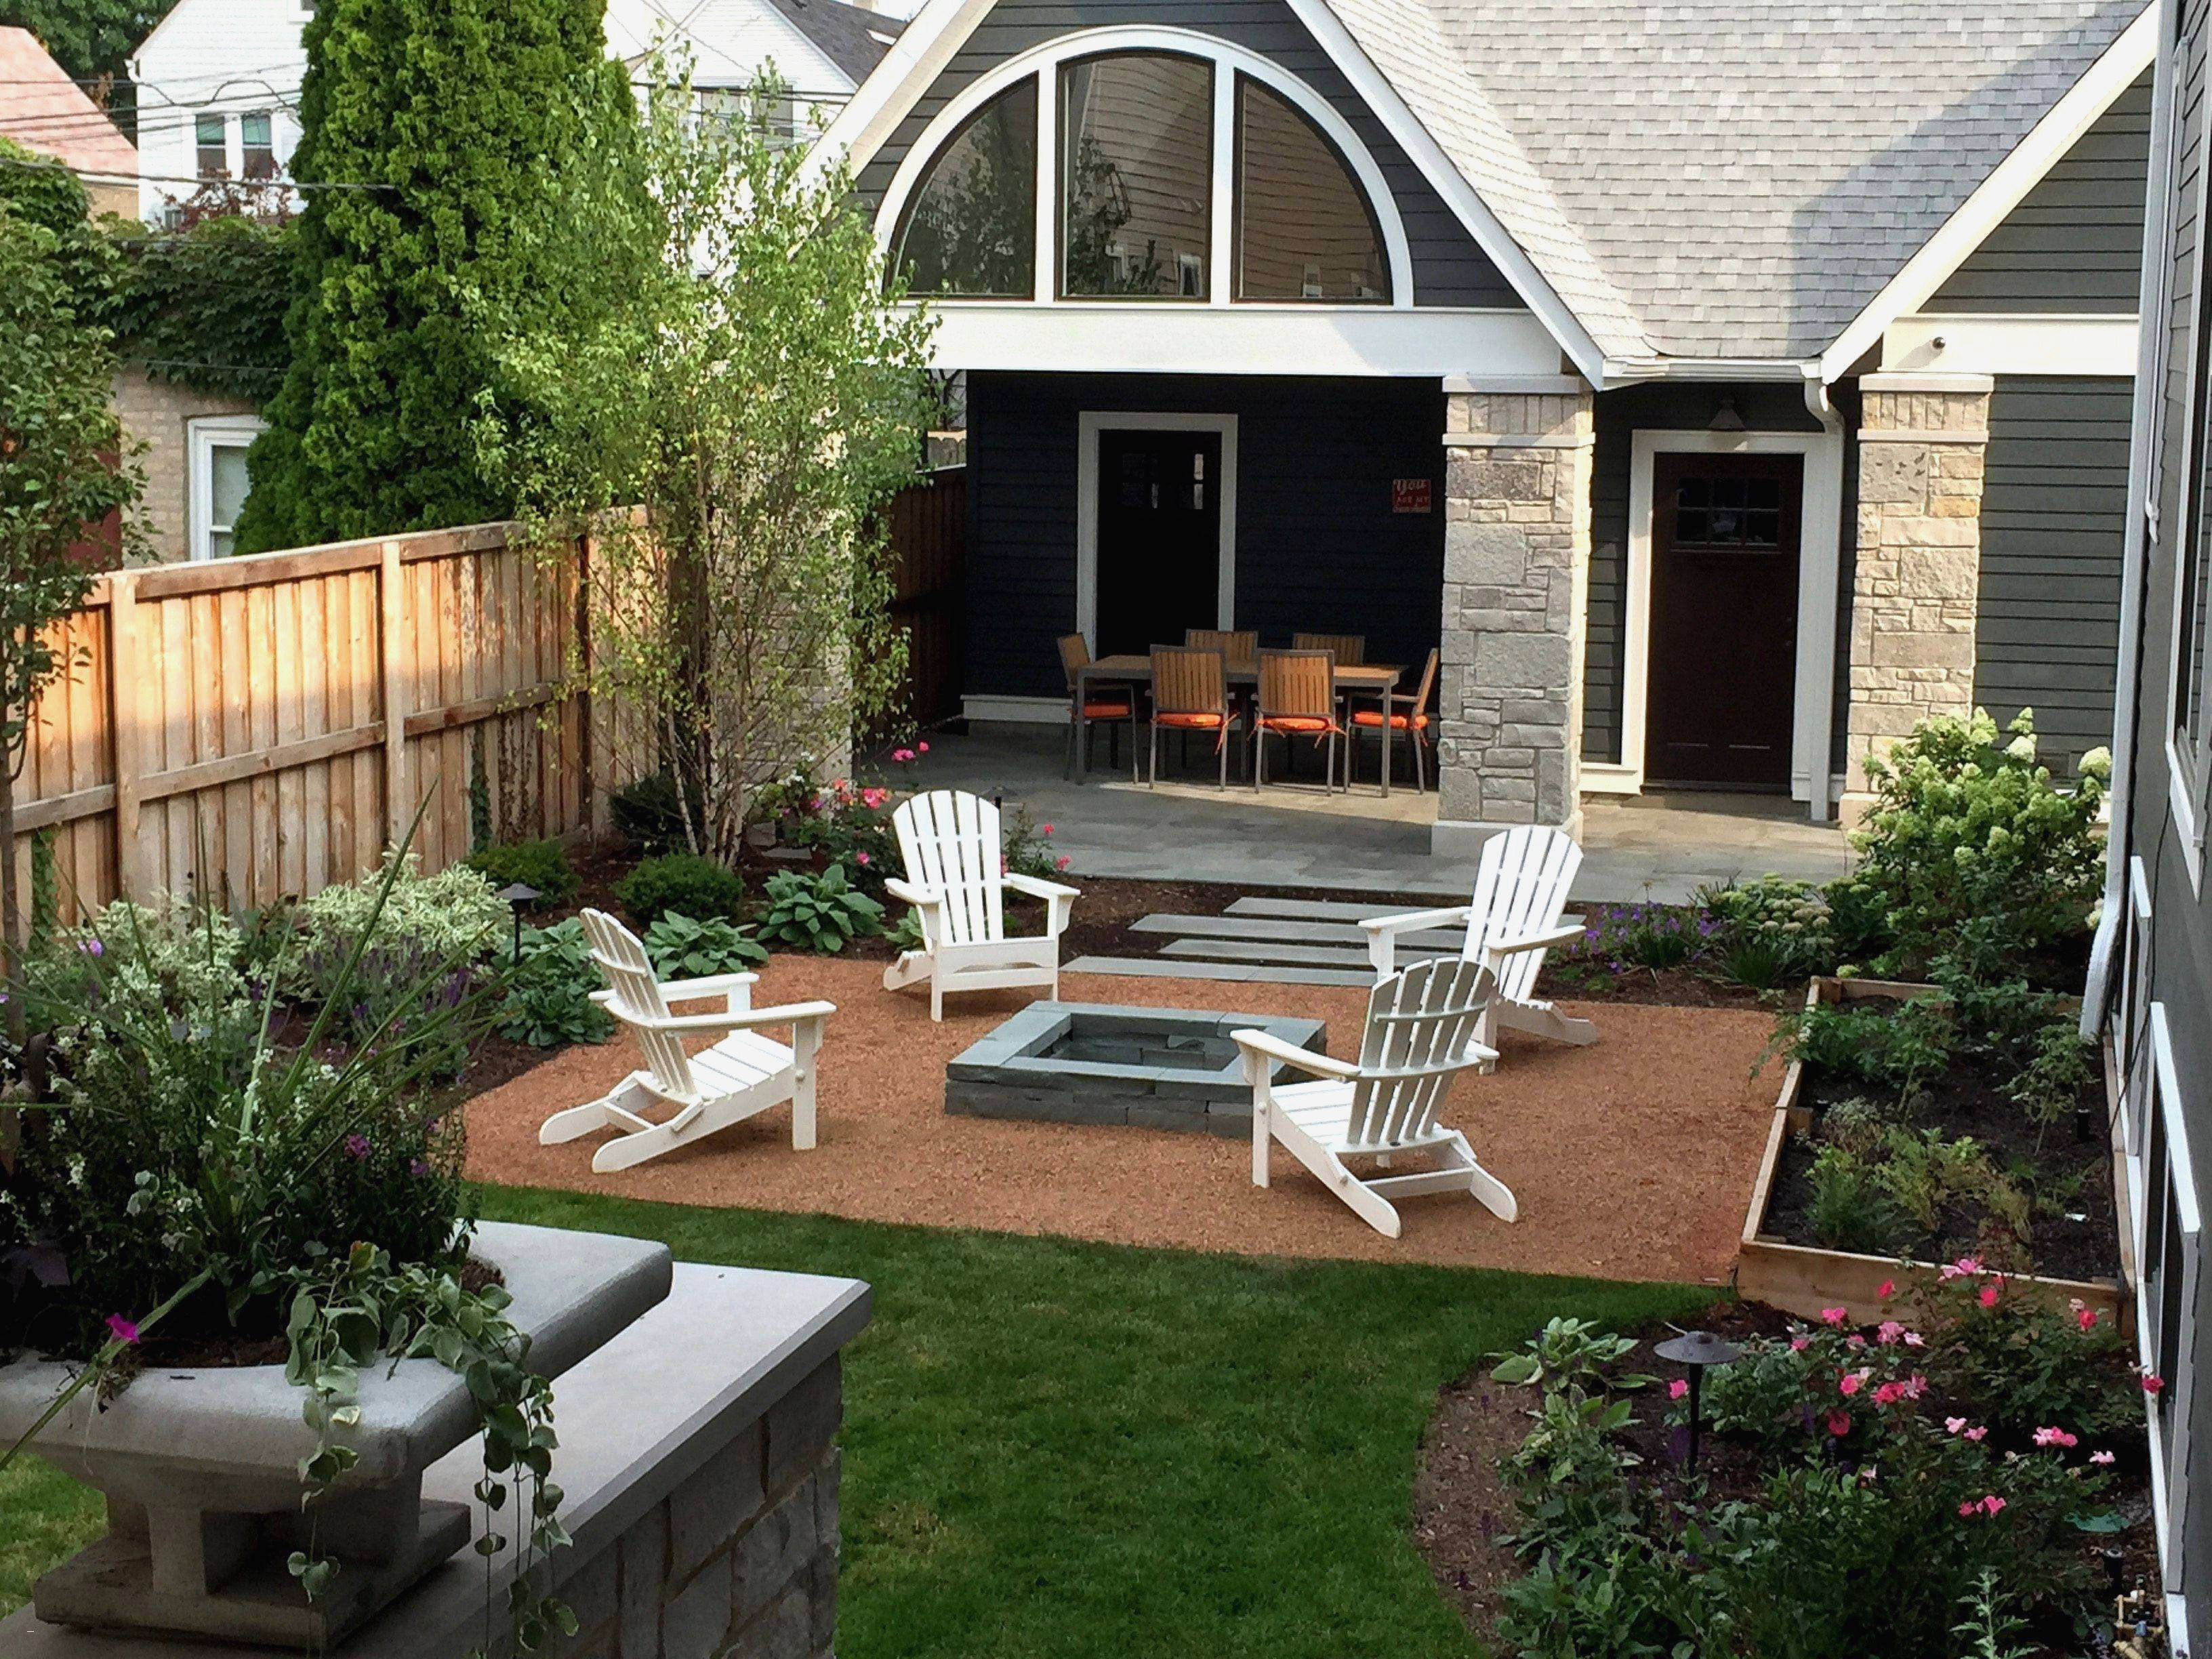 Top Backyard Shade Ideas Remodel Interior Planning House Ideas pertaining to 10 Clever Ideas How to Craft Backyard Shade Ideas